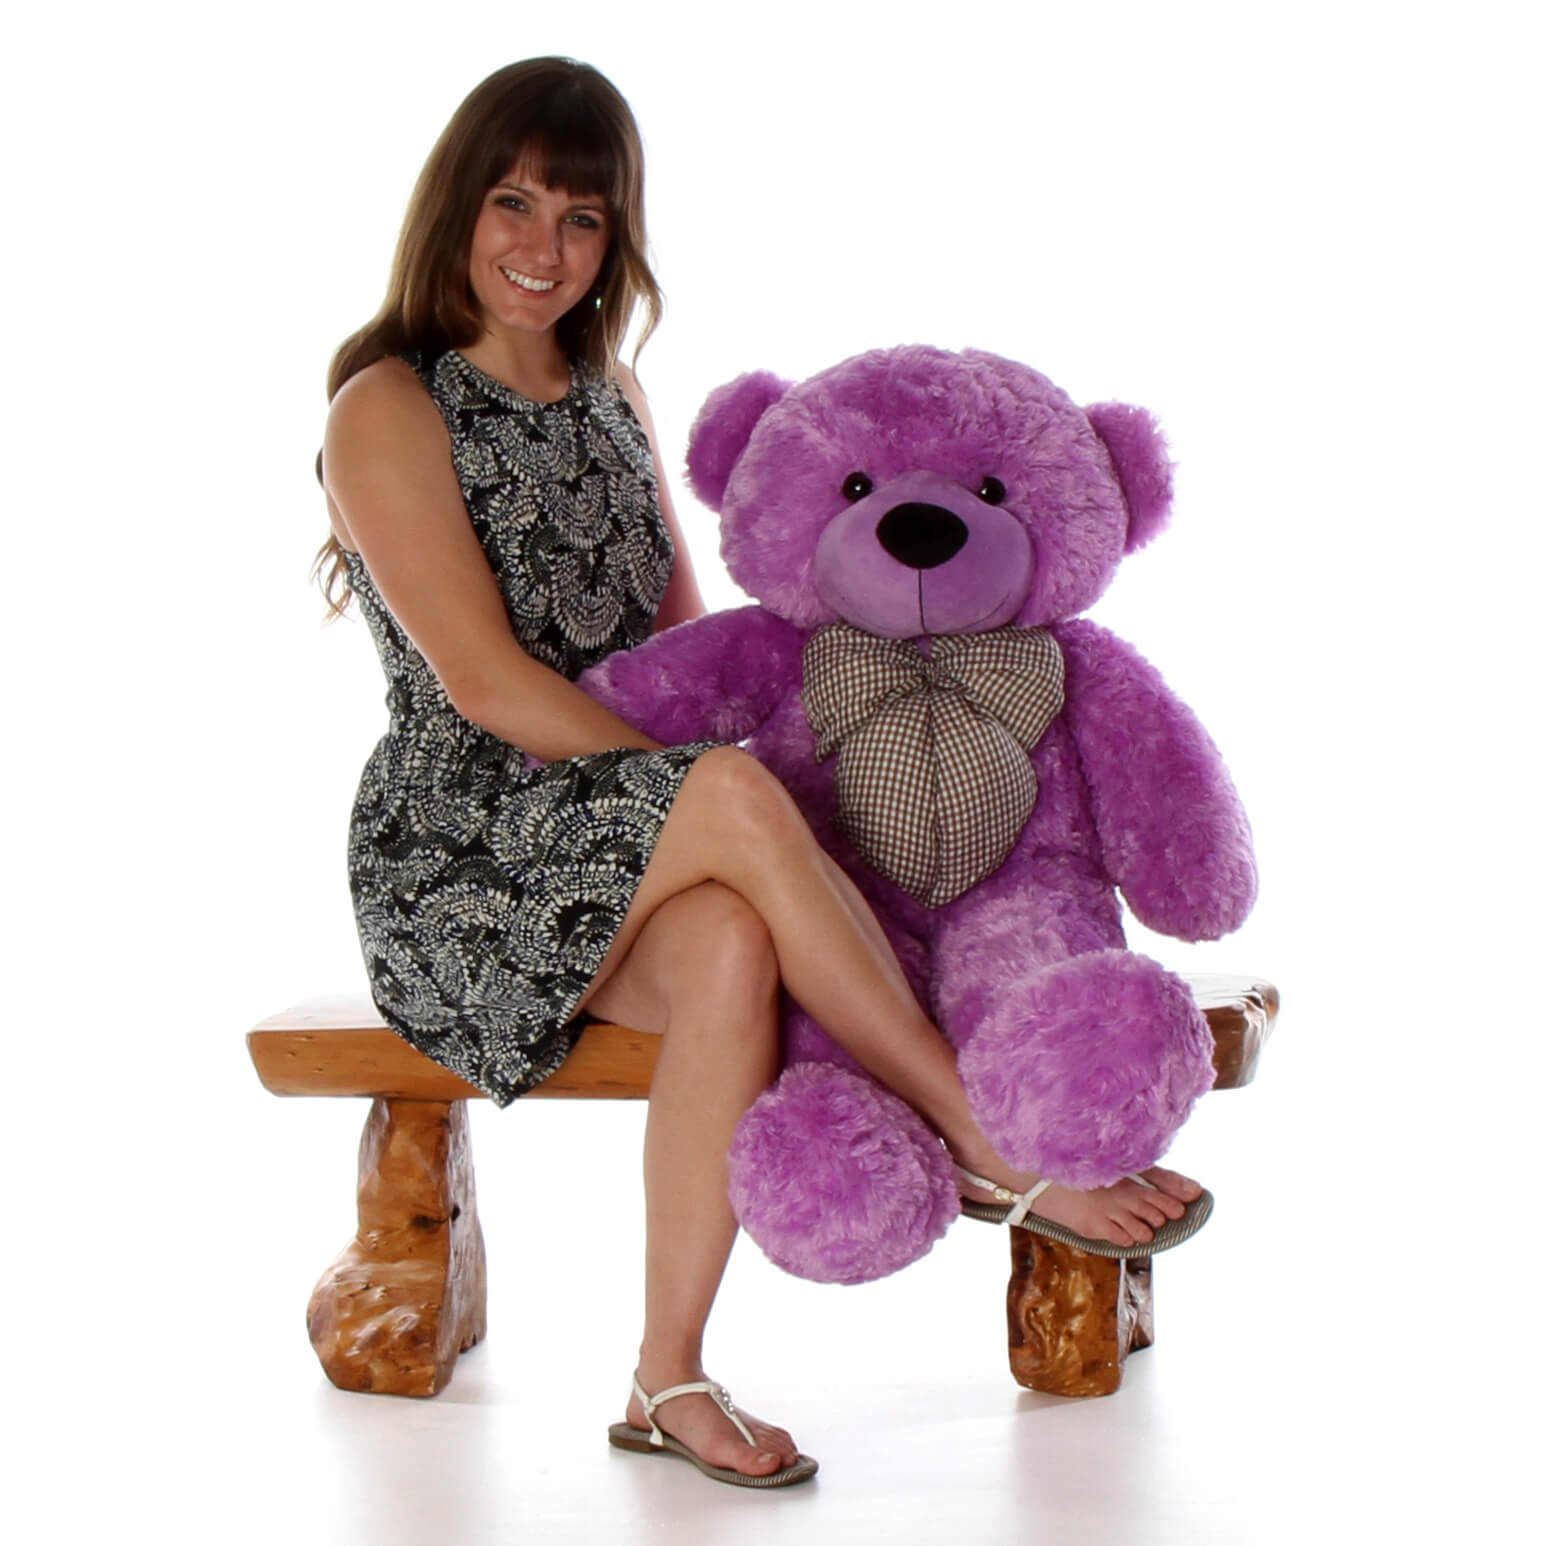 huge-purple-teddy-bear-most-huggable-soft-deedee-cuddles-38in-1.jpg